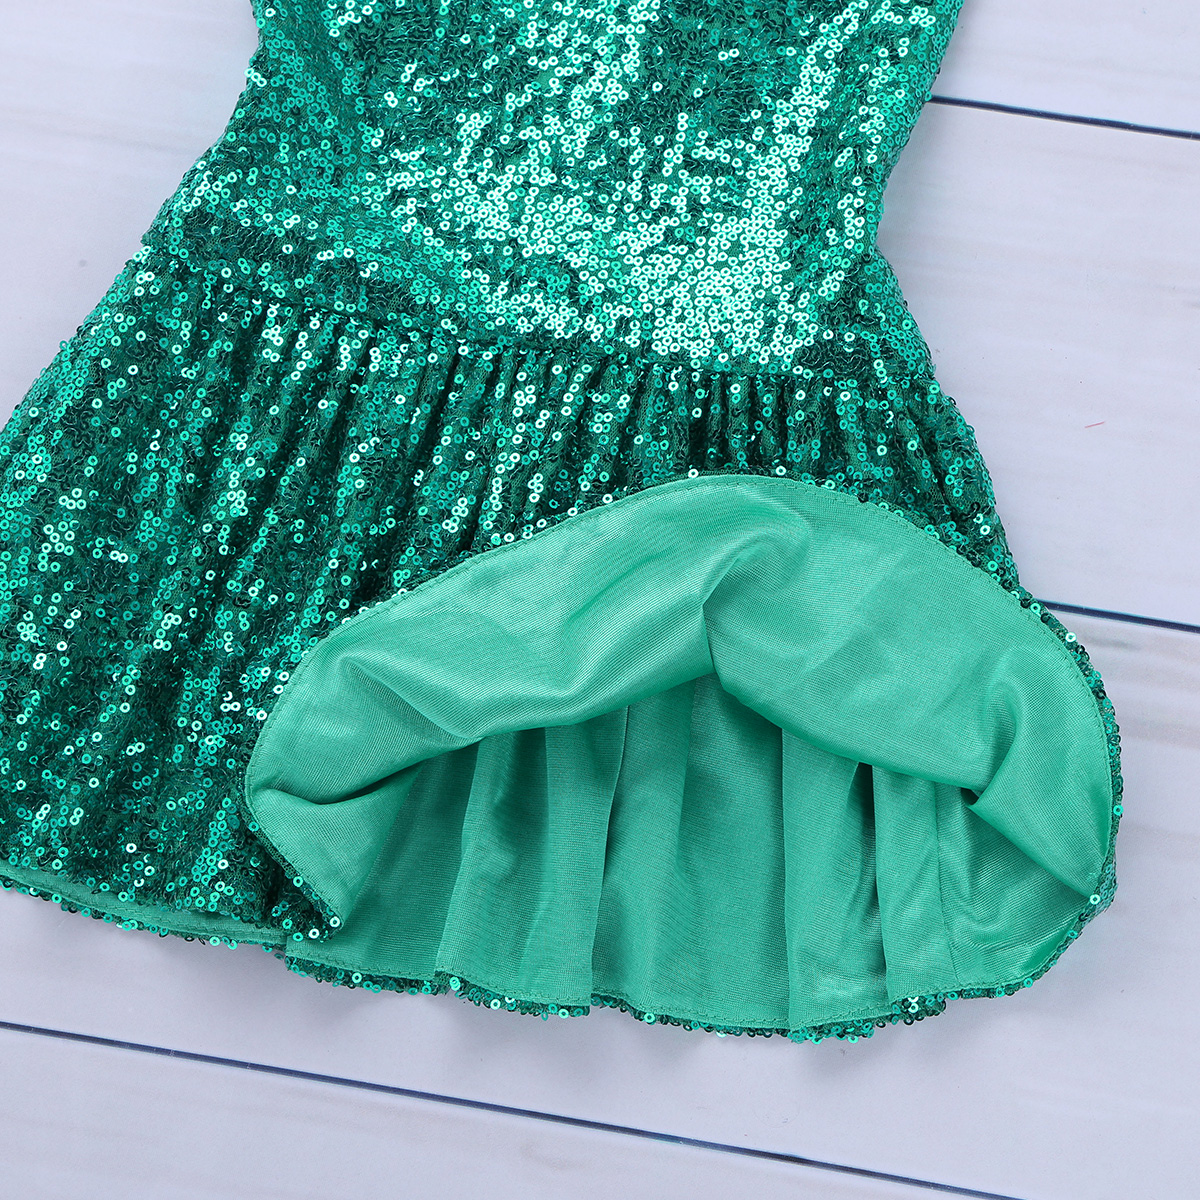 3aa8c5c8ef01a Children Photography Skirts Girls Shiny Sequins Mermaid Tails Halloween  Costumes for Kids Cosplay Party Maxi Skirt Dress Up